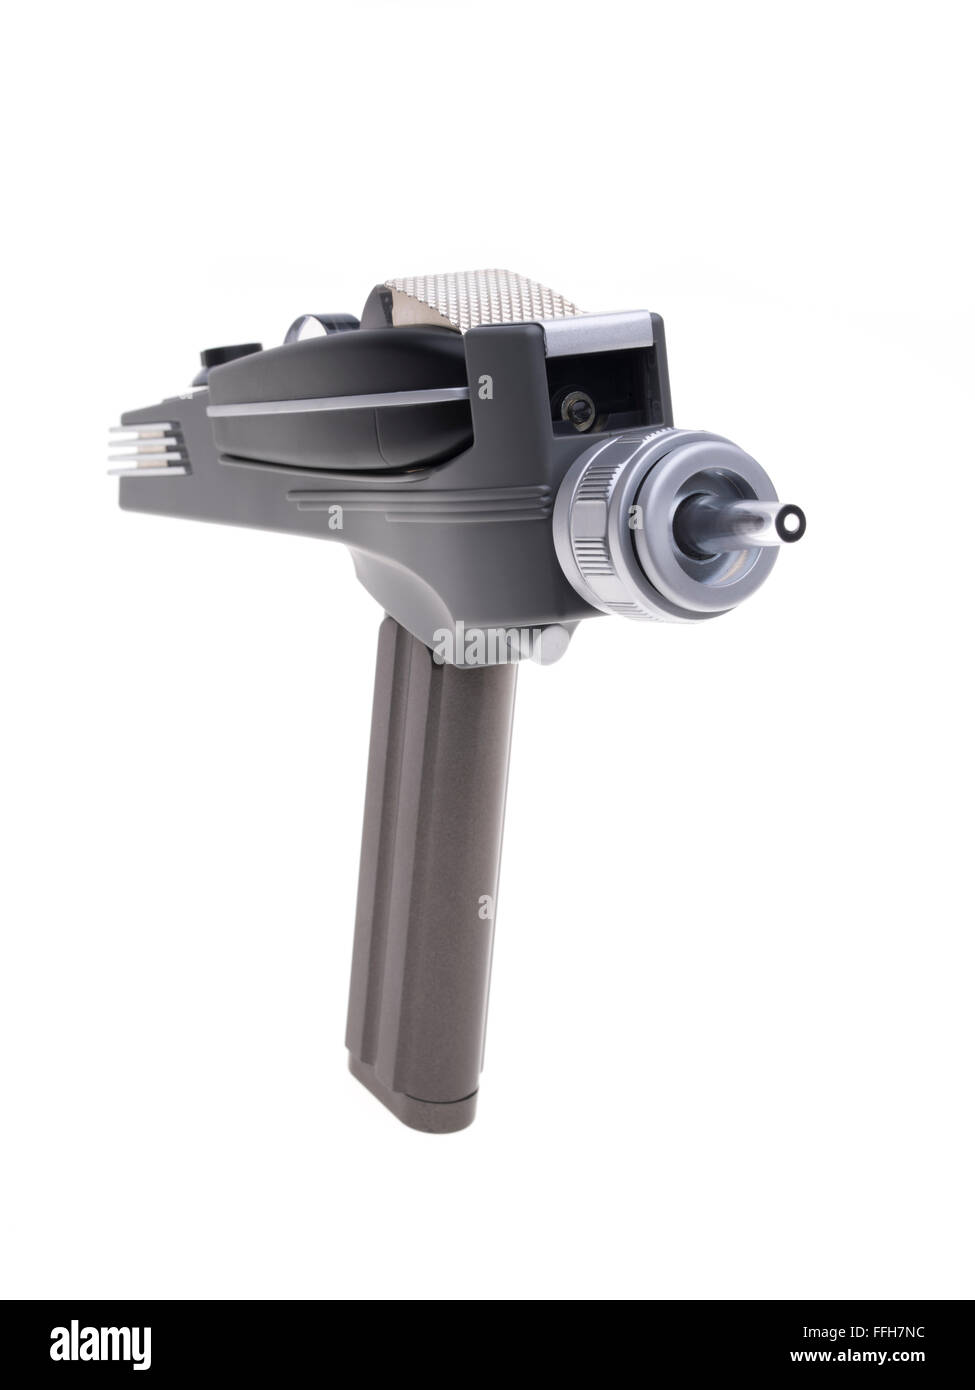 Star Trek the original television series 1966 phaser weapon able to kill or stun - Stock Image